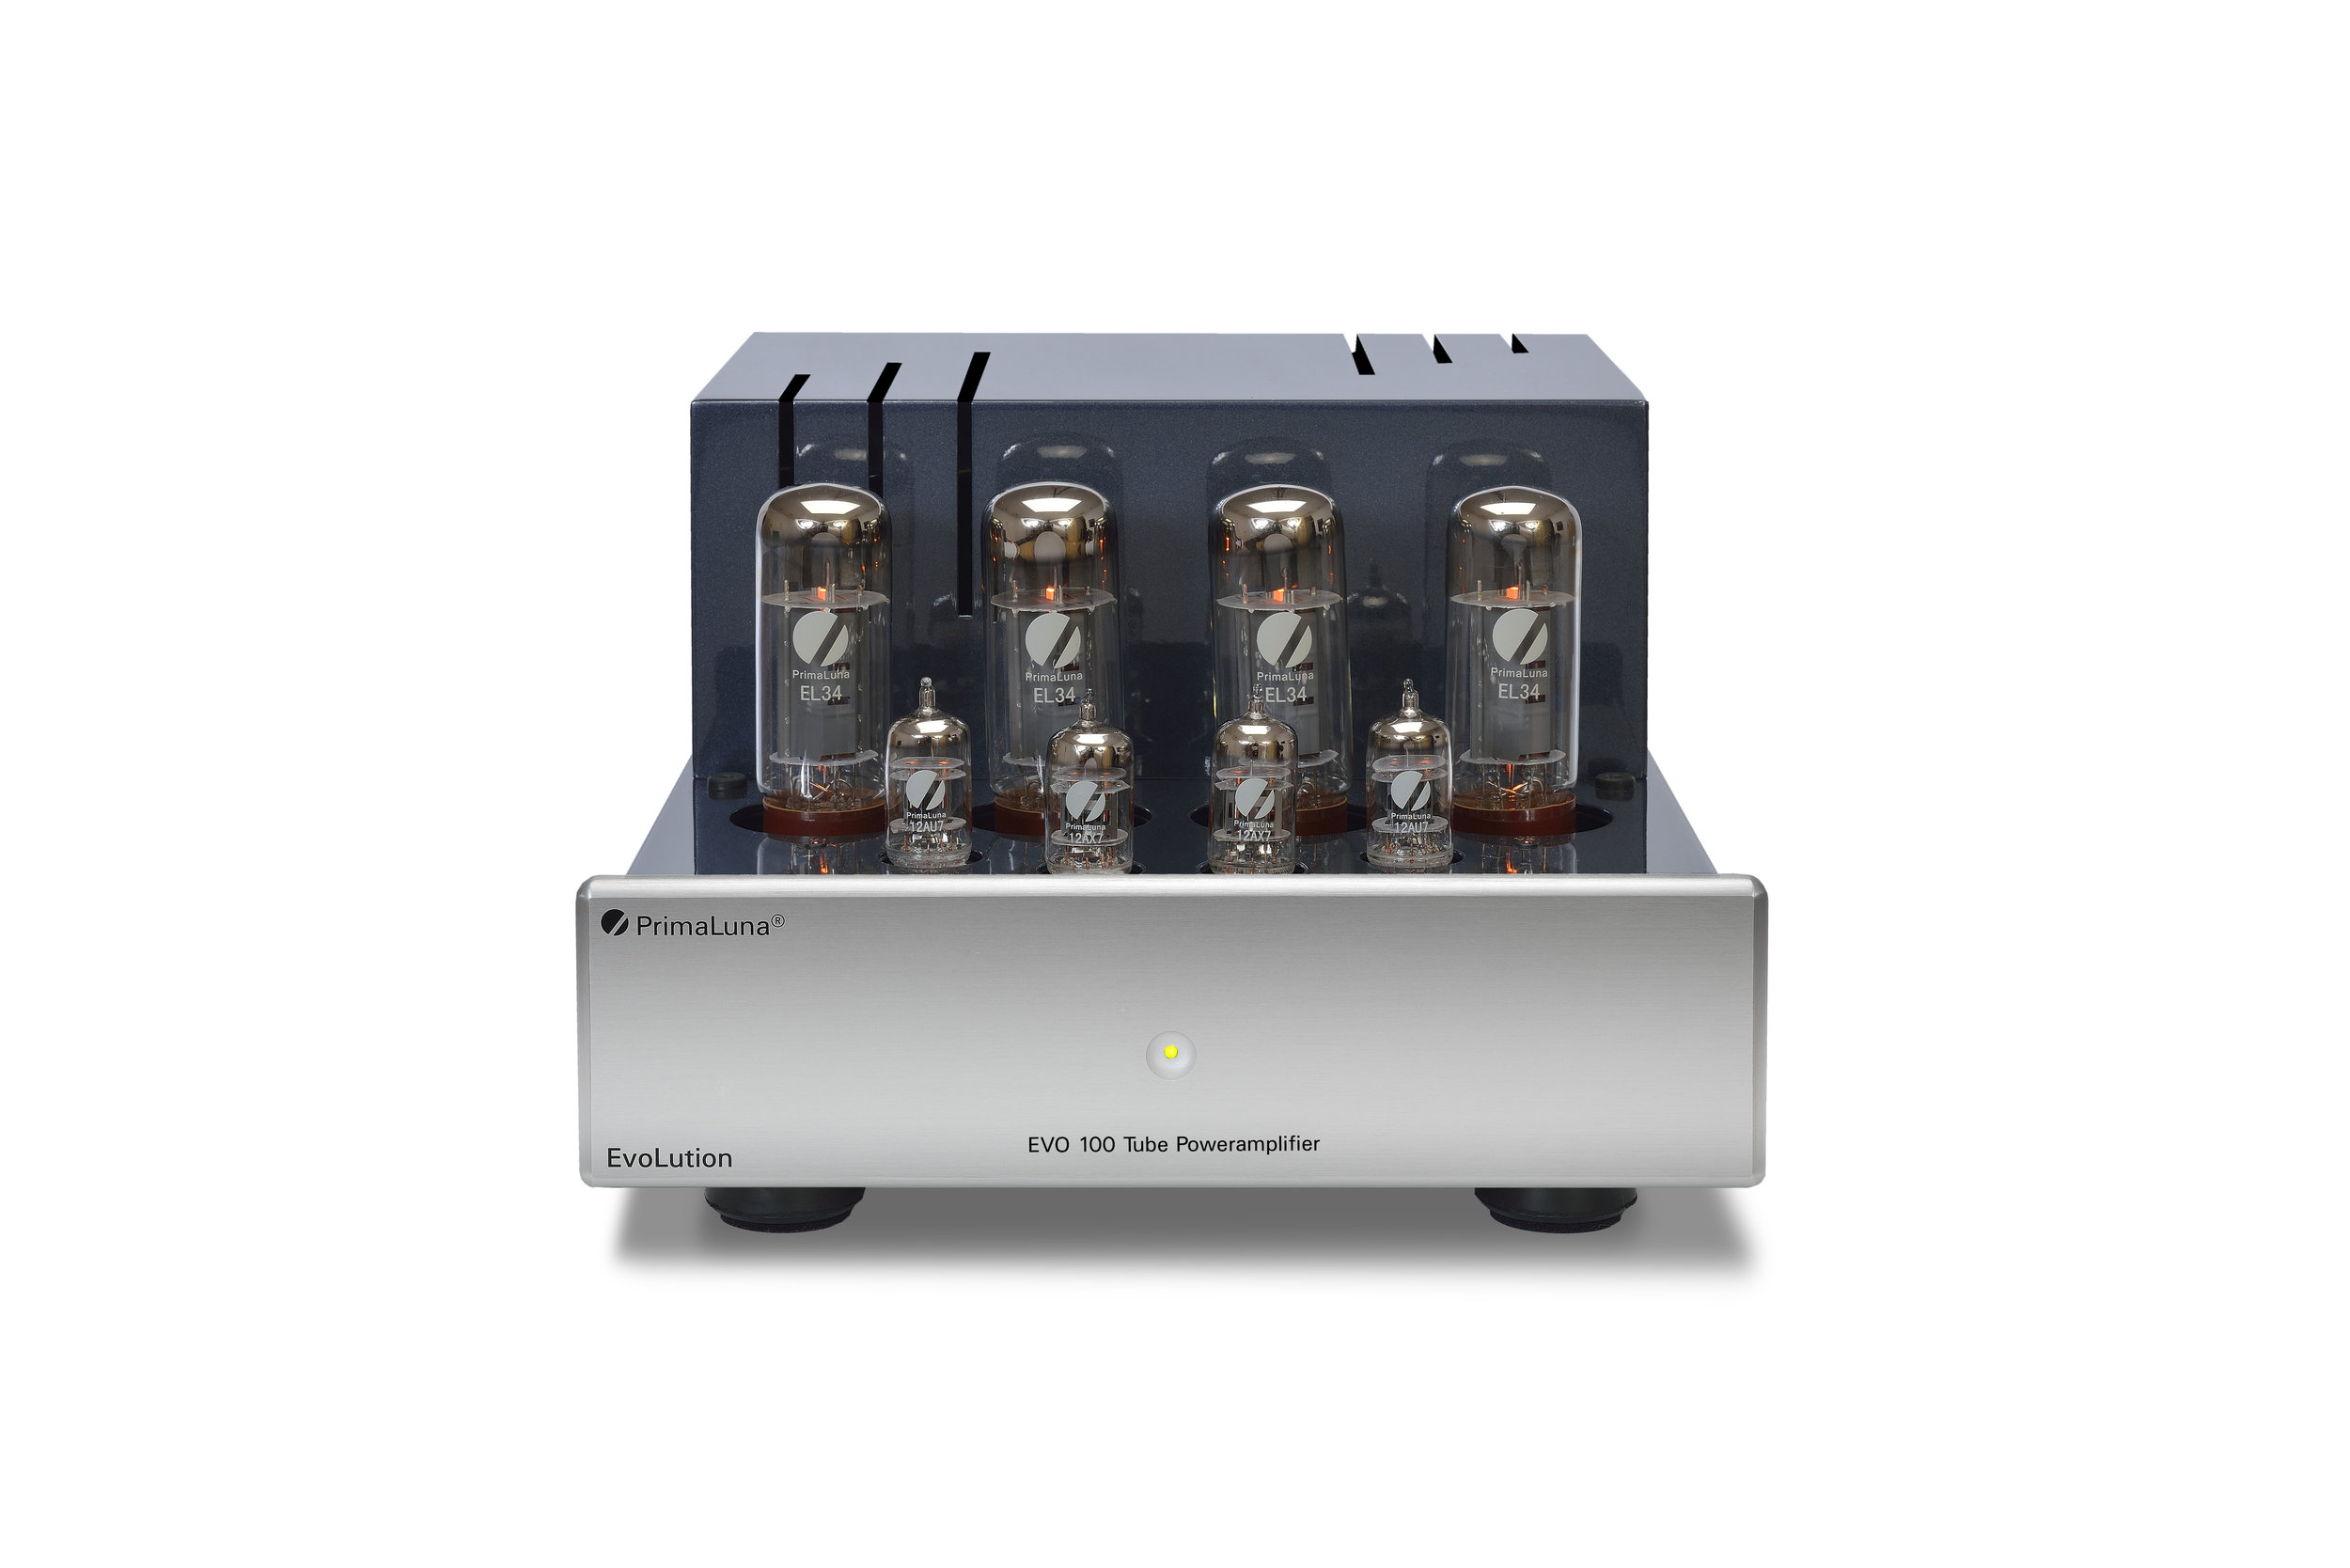 132b - PrimaLuna EVO 100 Tube Poweramplifier - silver - front - without cage - white background.jpg